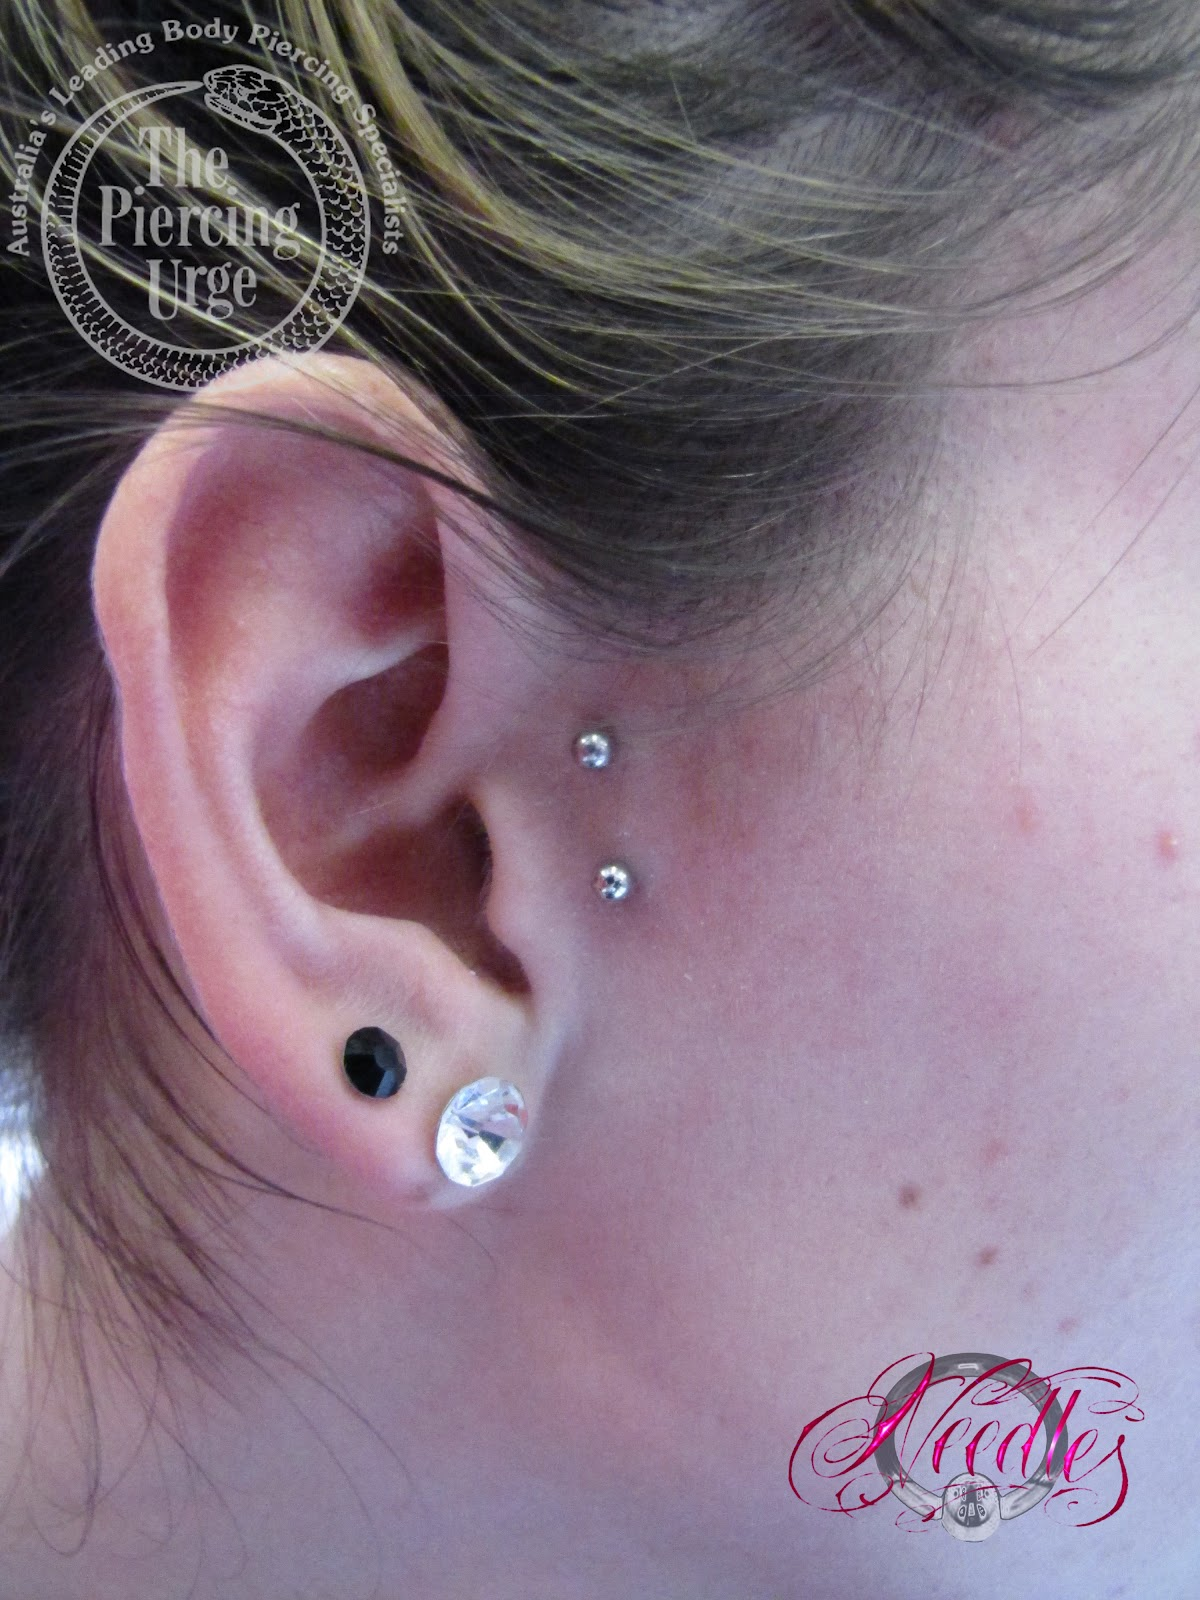 NINE BODY PIERCING BLOG: Over 3 Months Old Surface ...